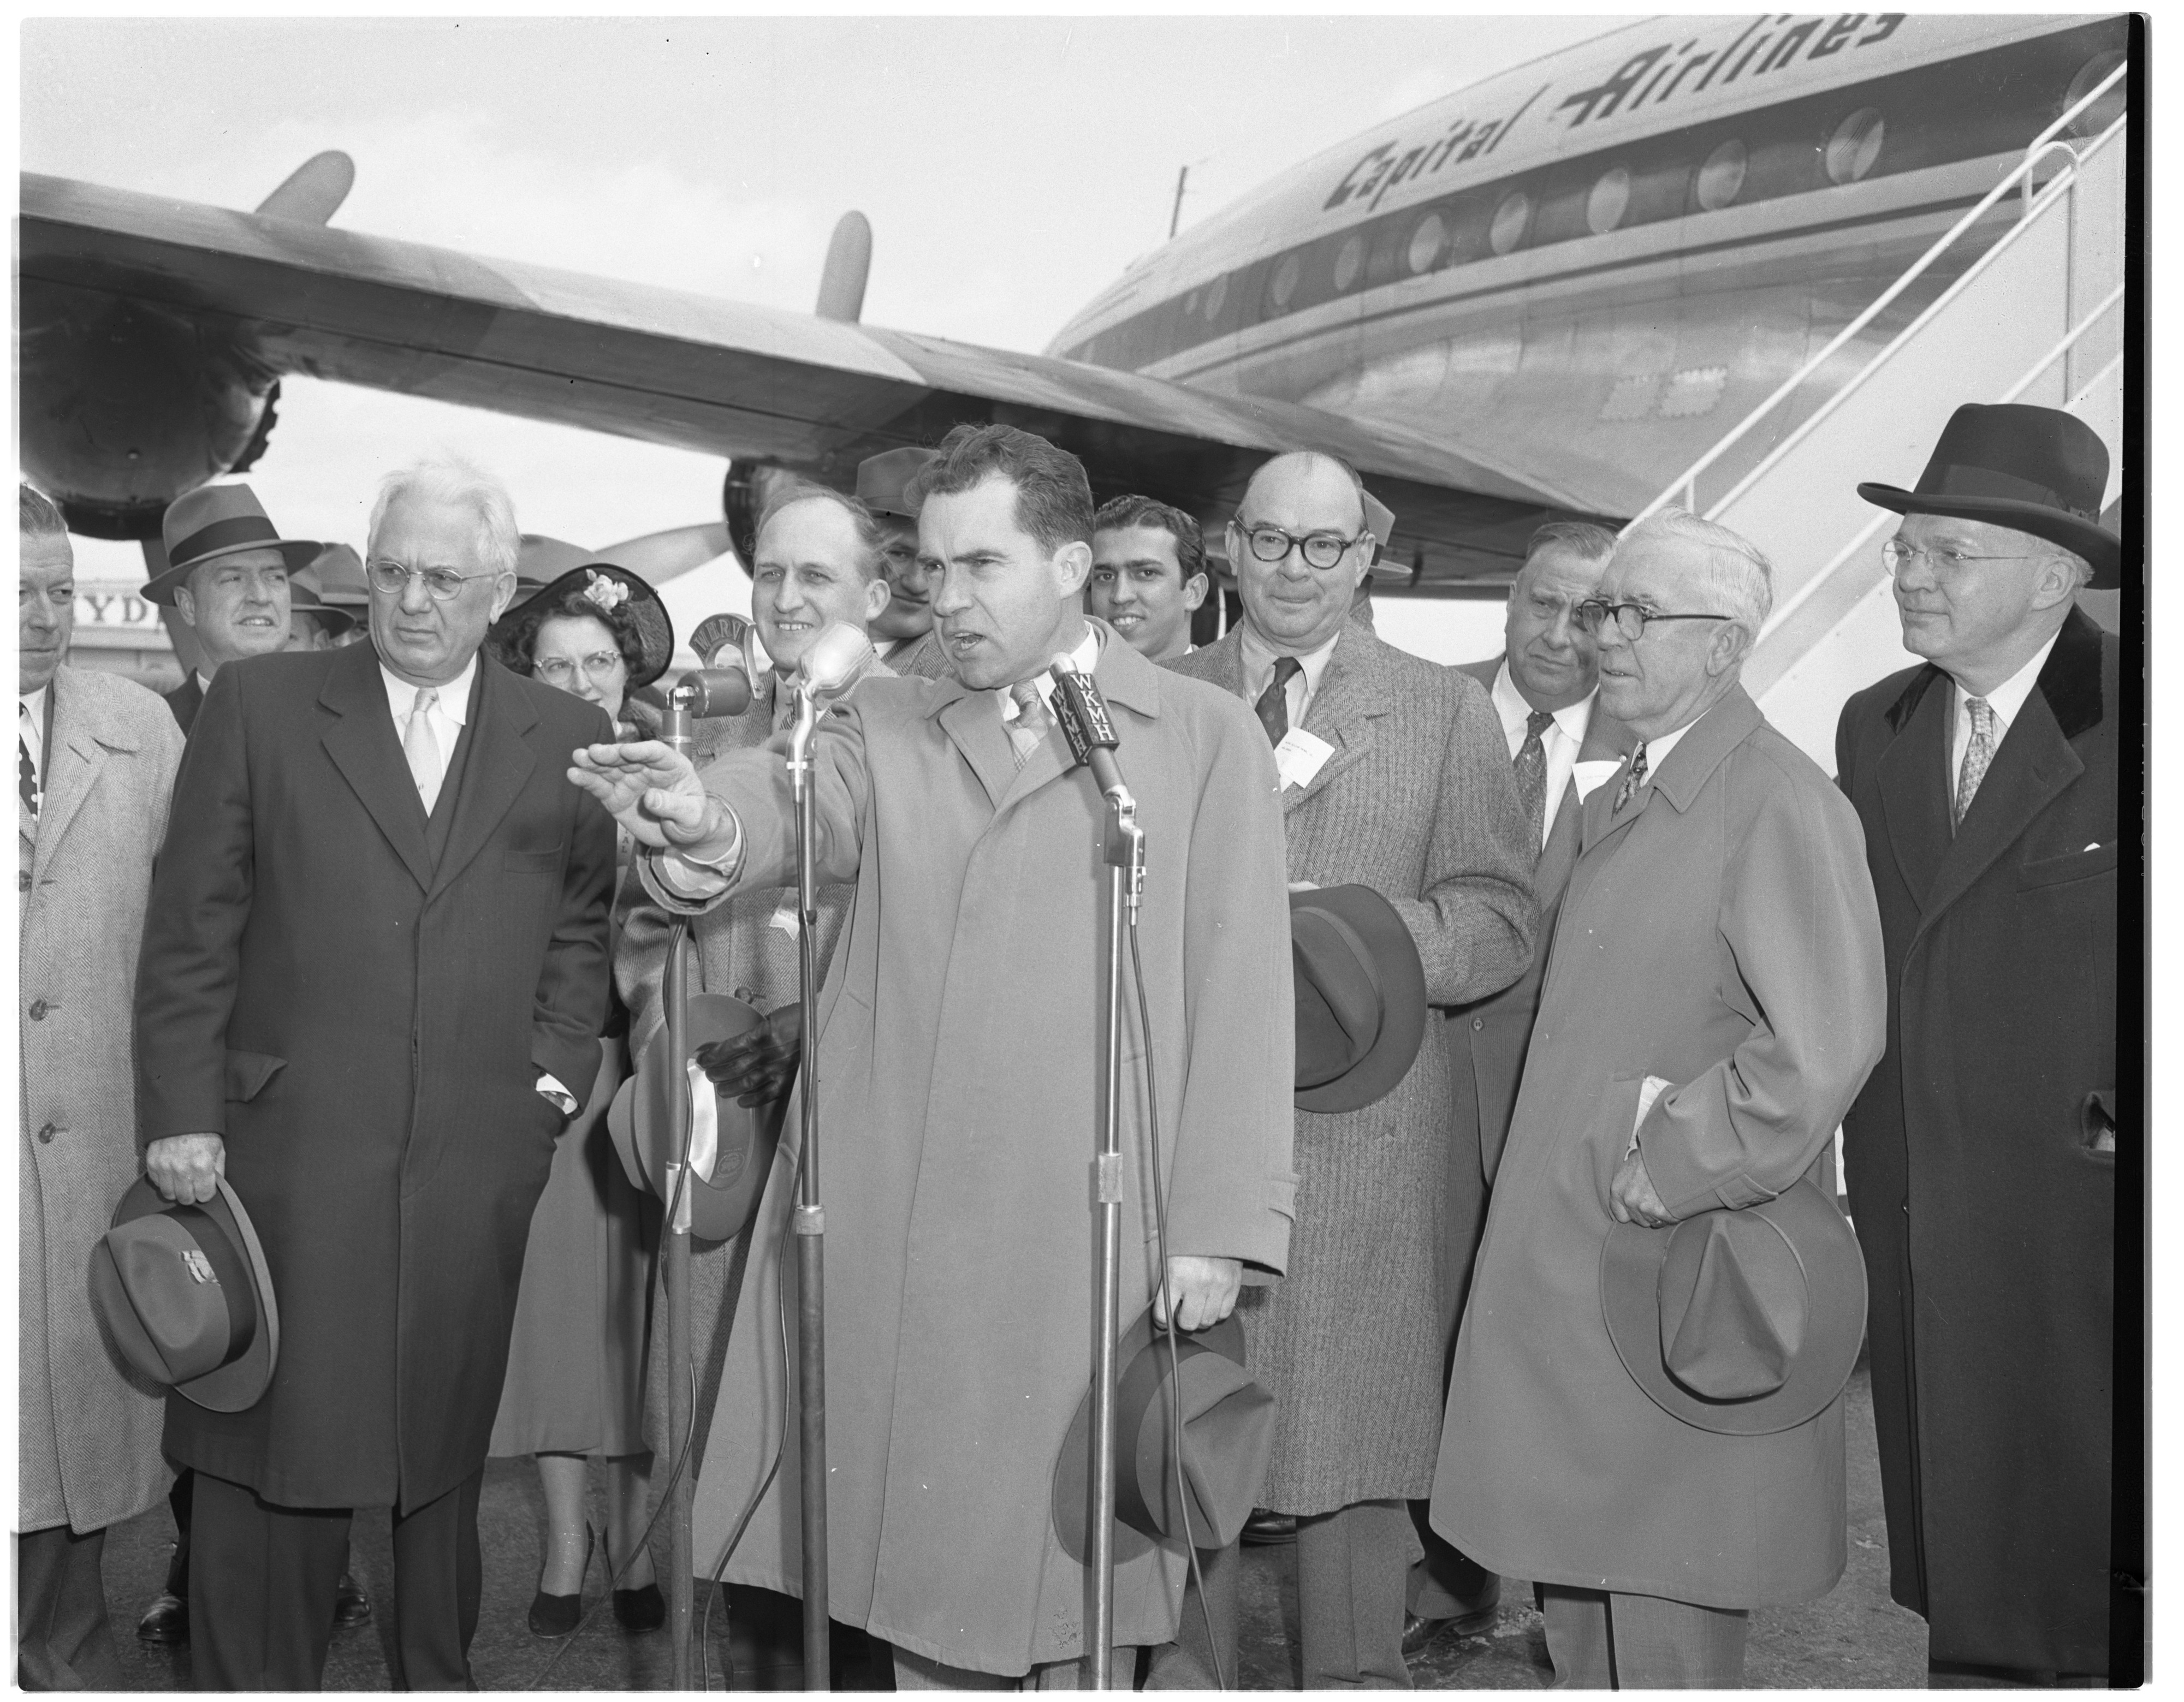 Vice President Richard M. Nixon Talks to the Crowd at Willow Run Airport, April 1954 image